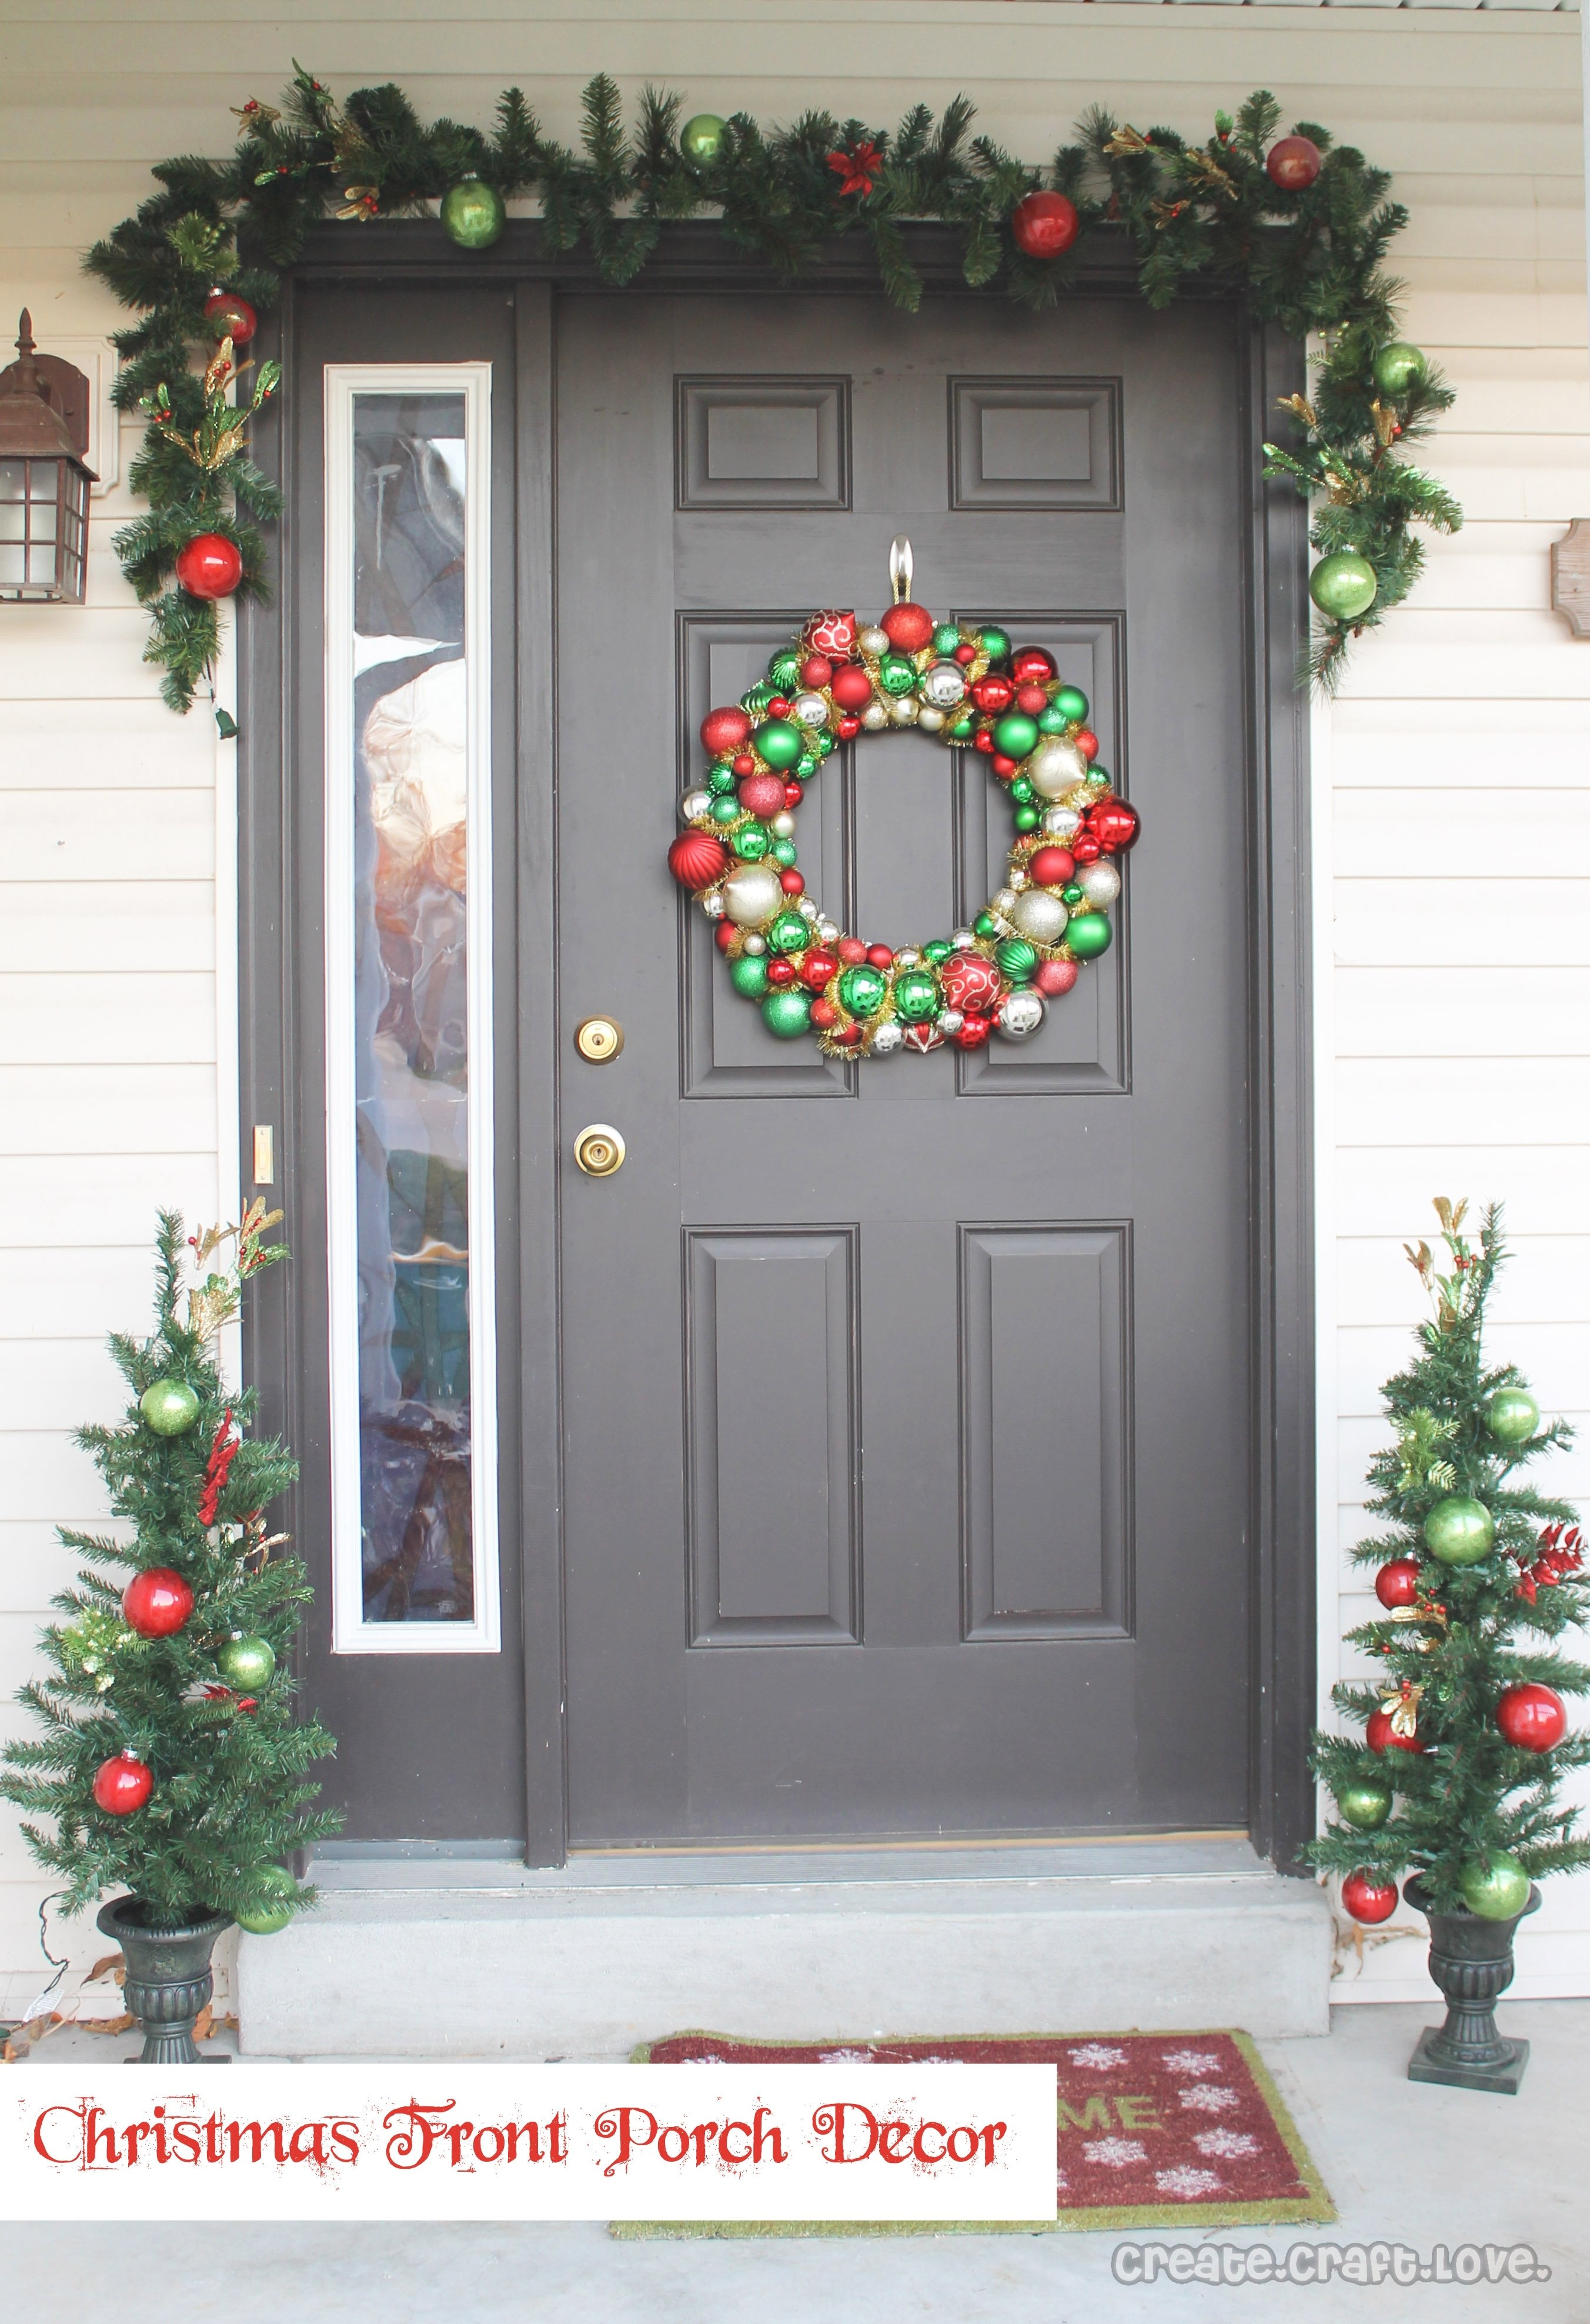 10 Nice Front Porch Christmas Decorating Ideas christmas front porch decor create craft love idolza how to decorate 2020